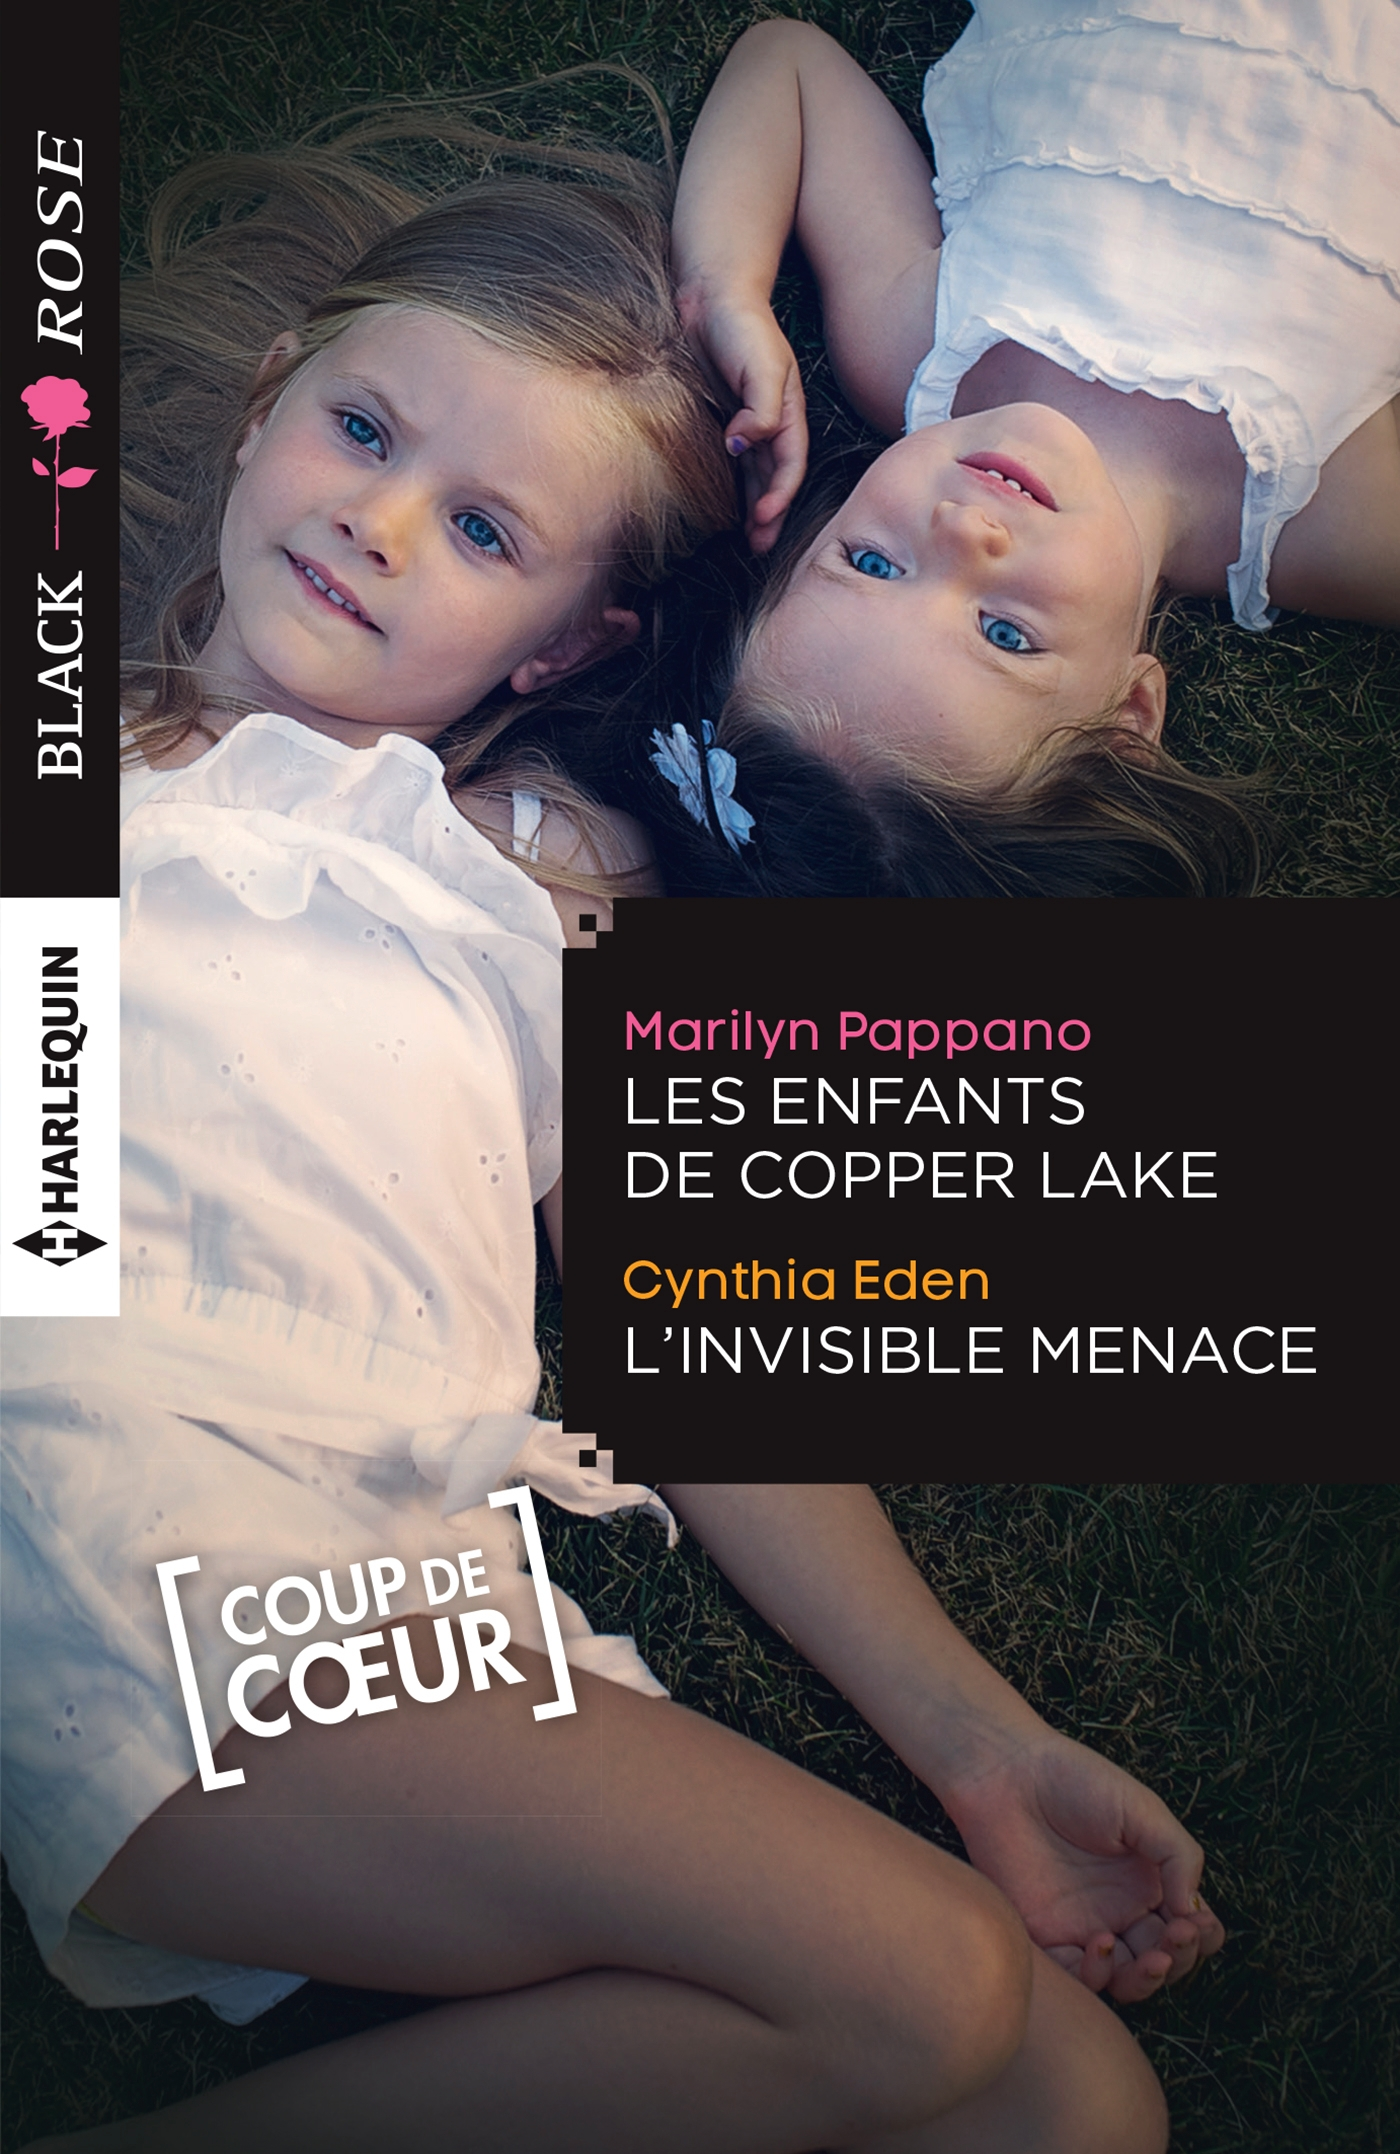 Les enfants de Copper Lake - L'invisible menace